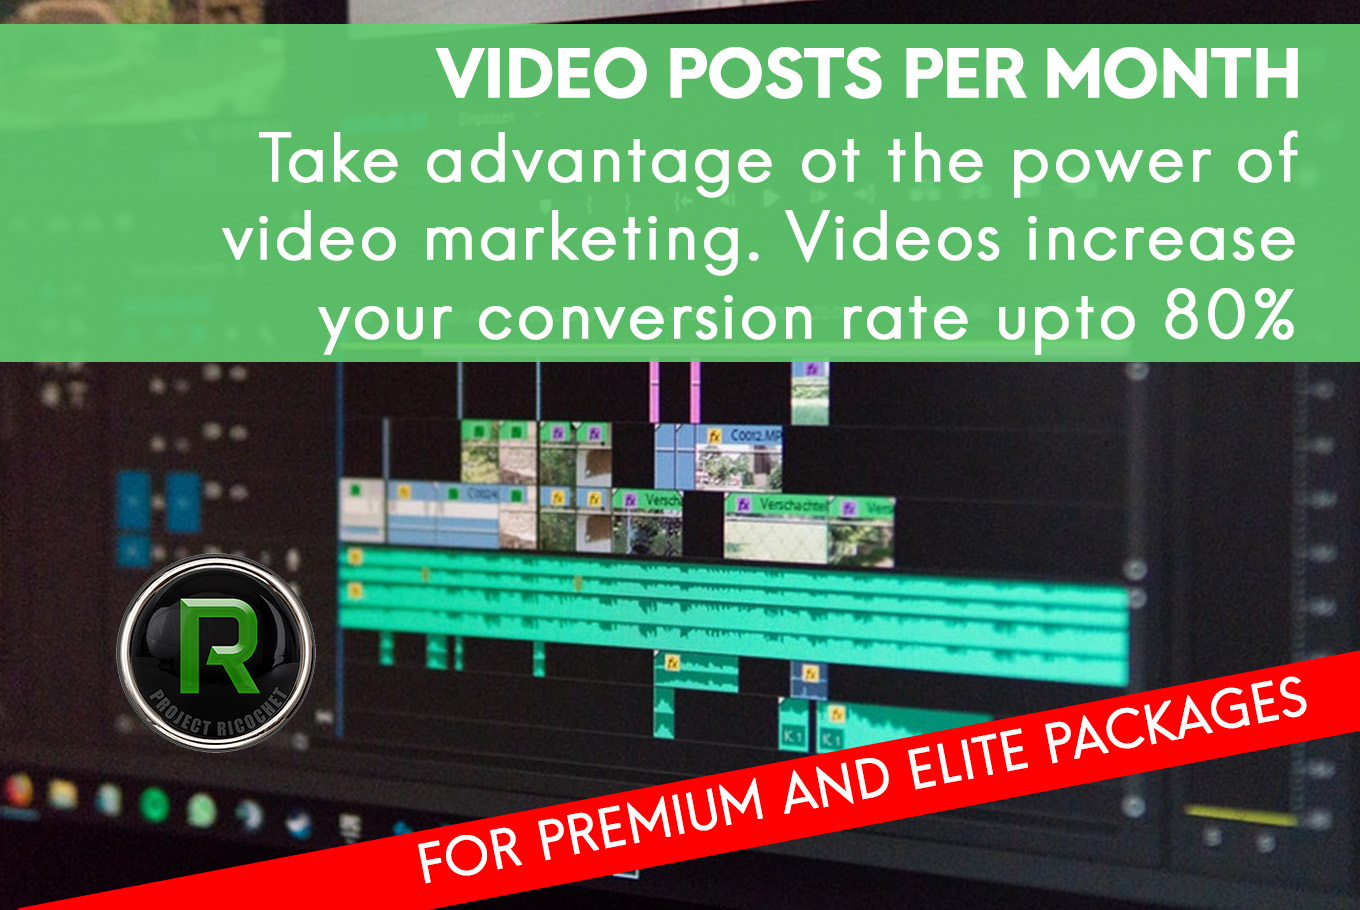 Social media solution - Video Posts per month